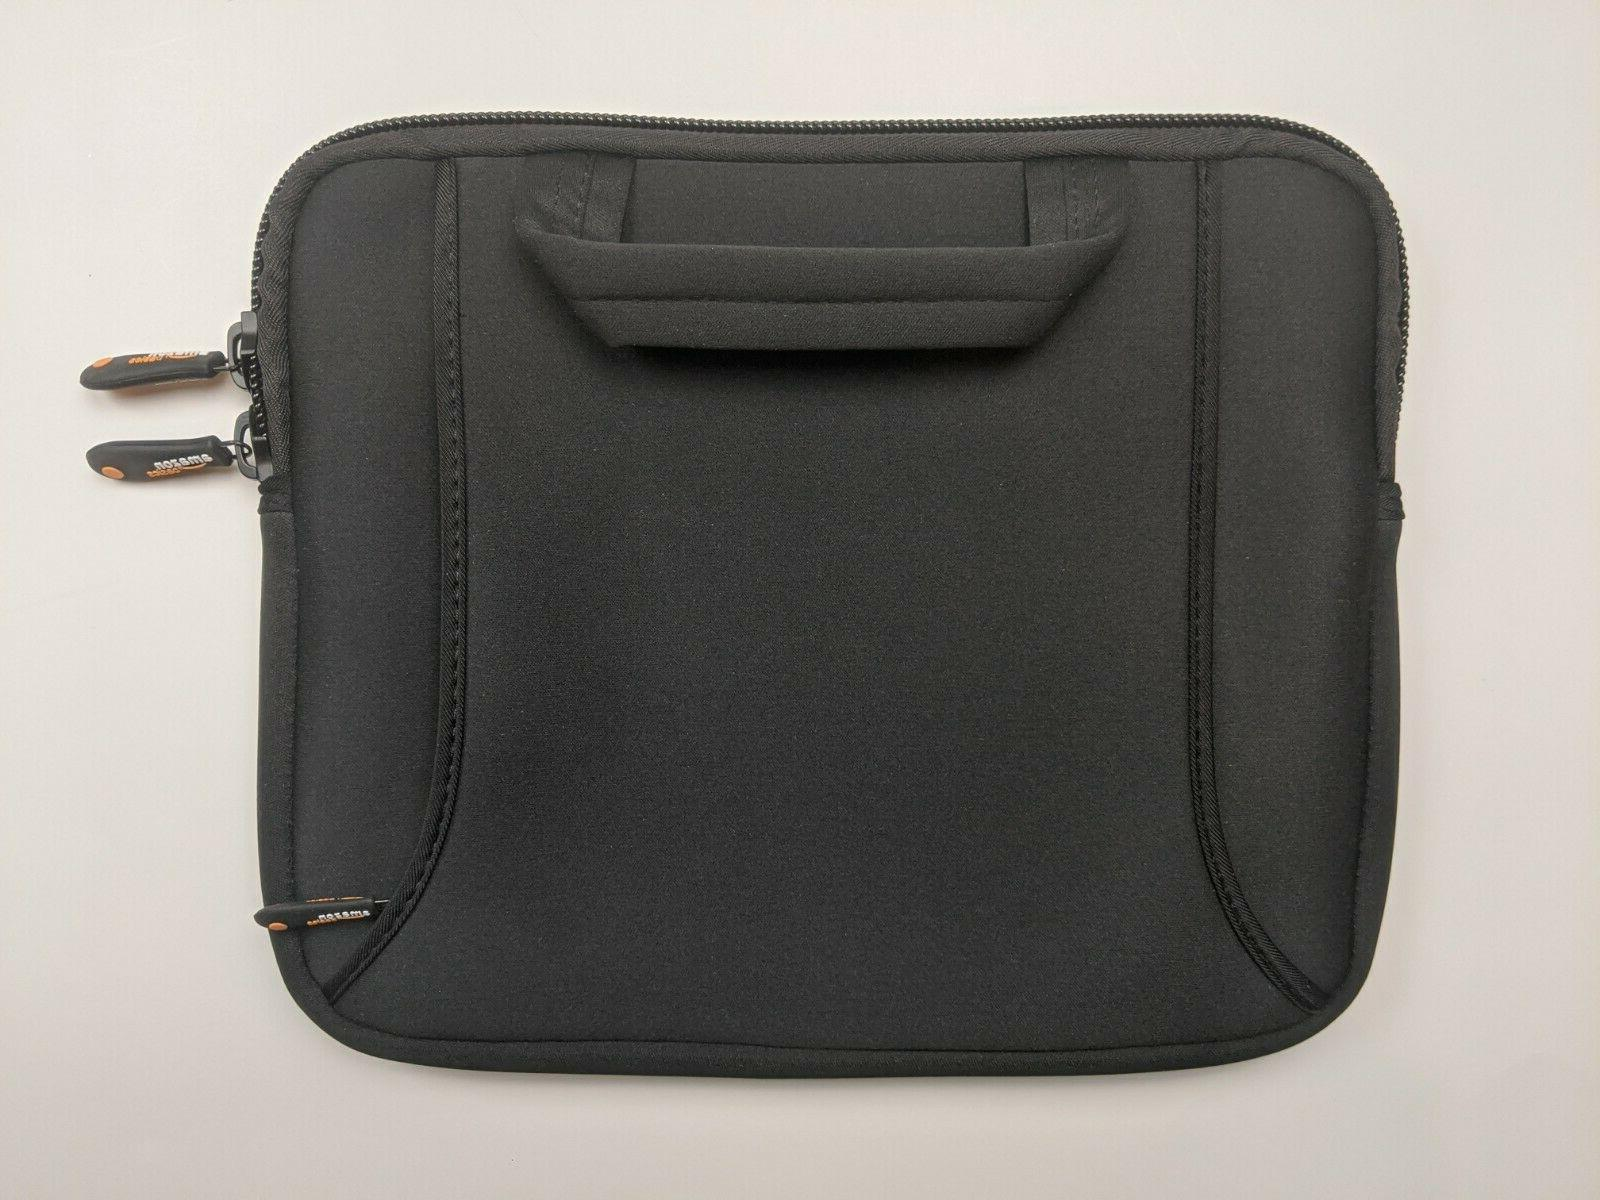 ipad air and netbook bag with handle